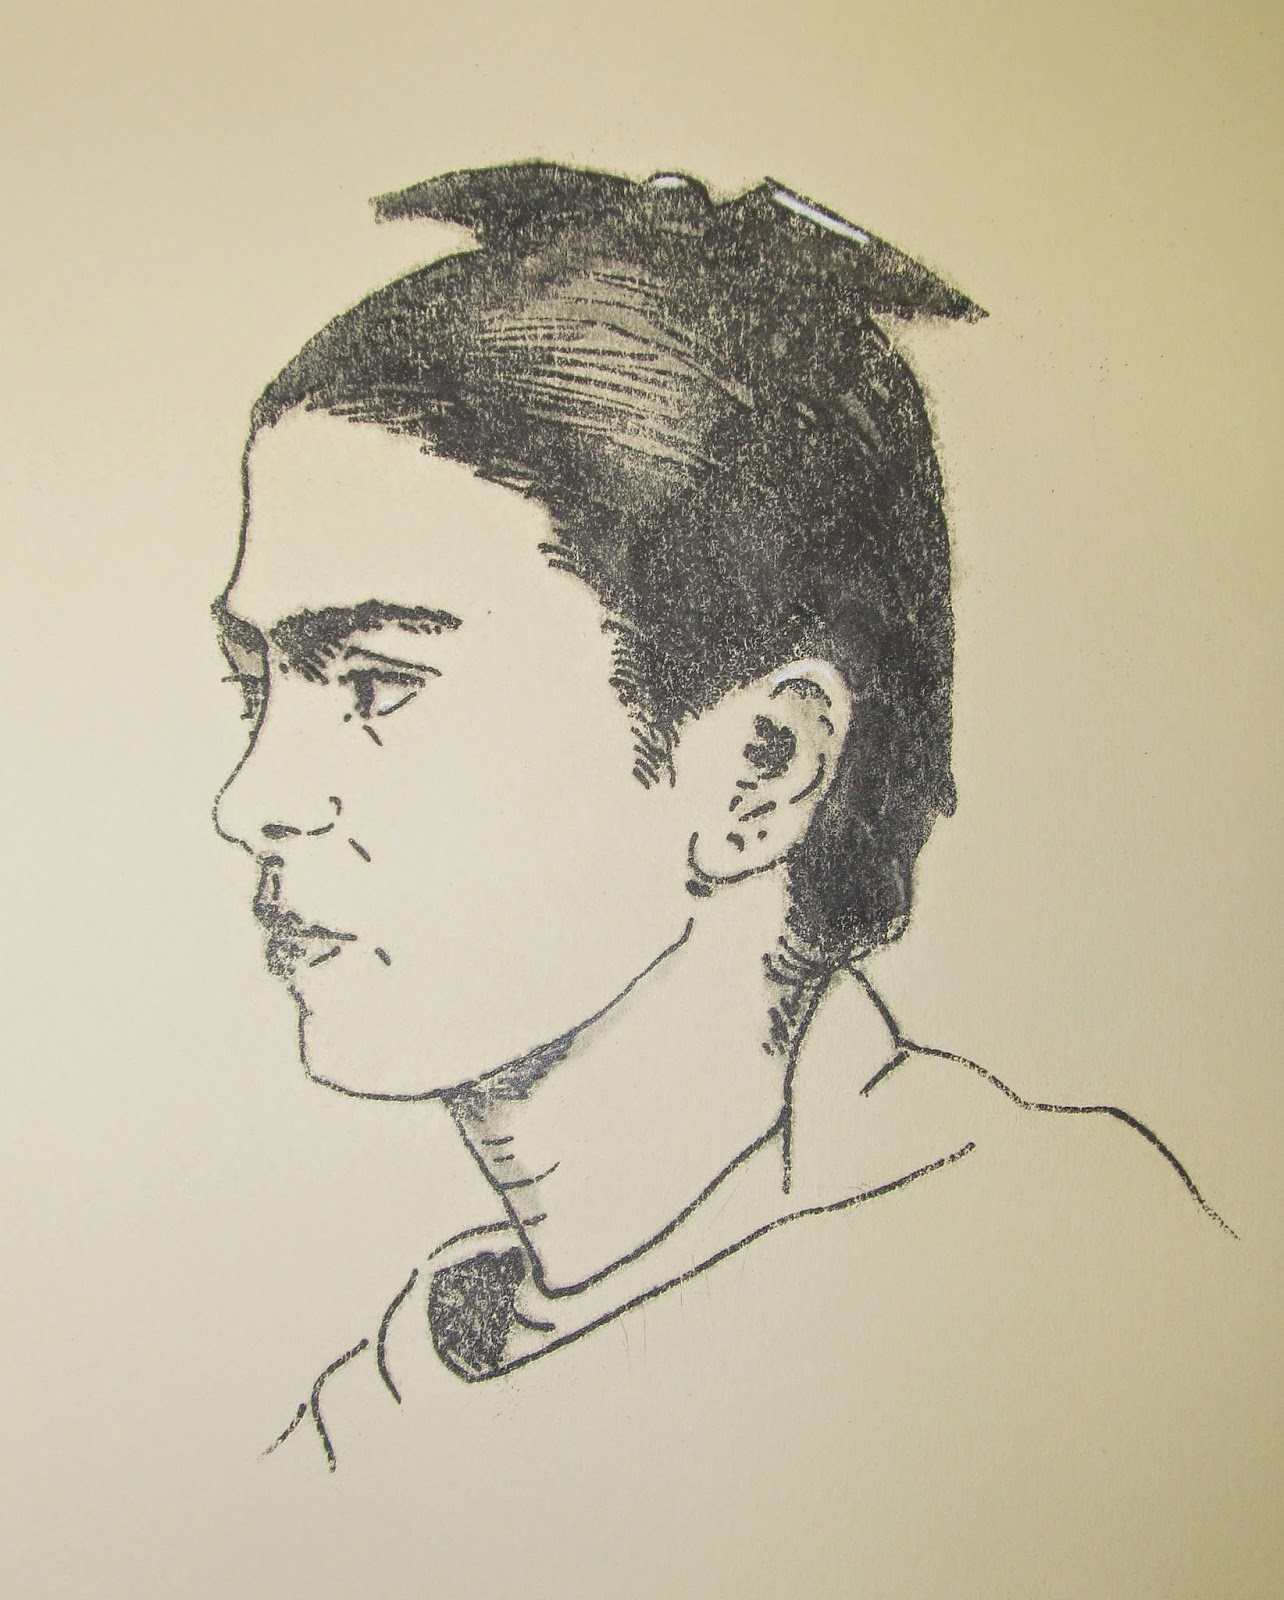 Frida Kahlo. Intaglio Etching. Edition of 10. 8 3/8 x 61/2 inches. Circa 1980 by F. Lennox Campello